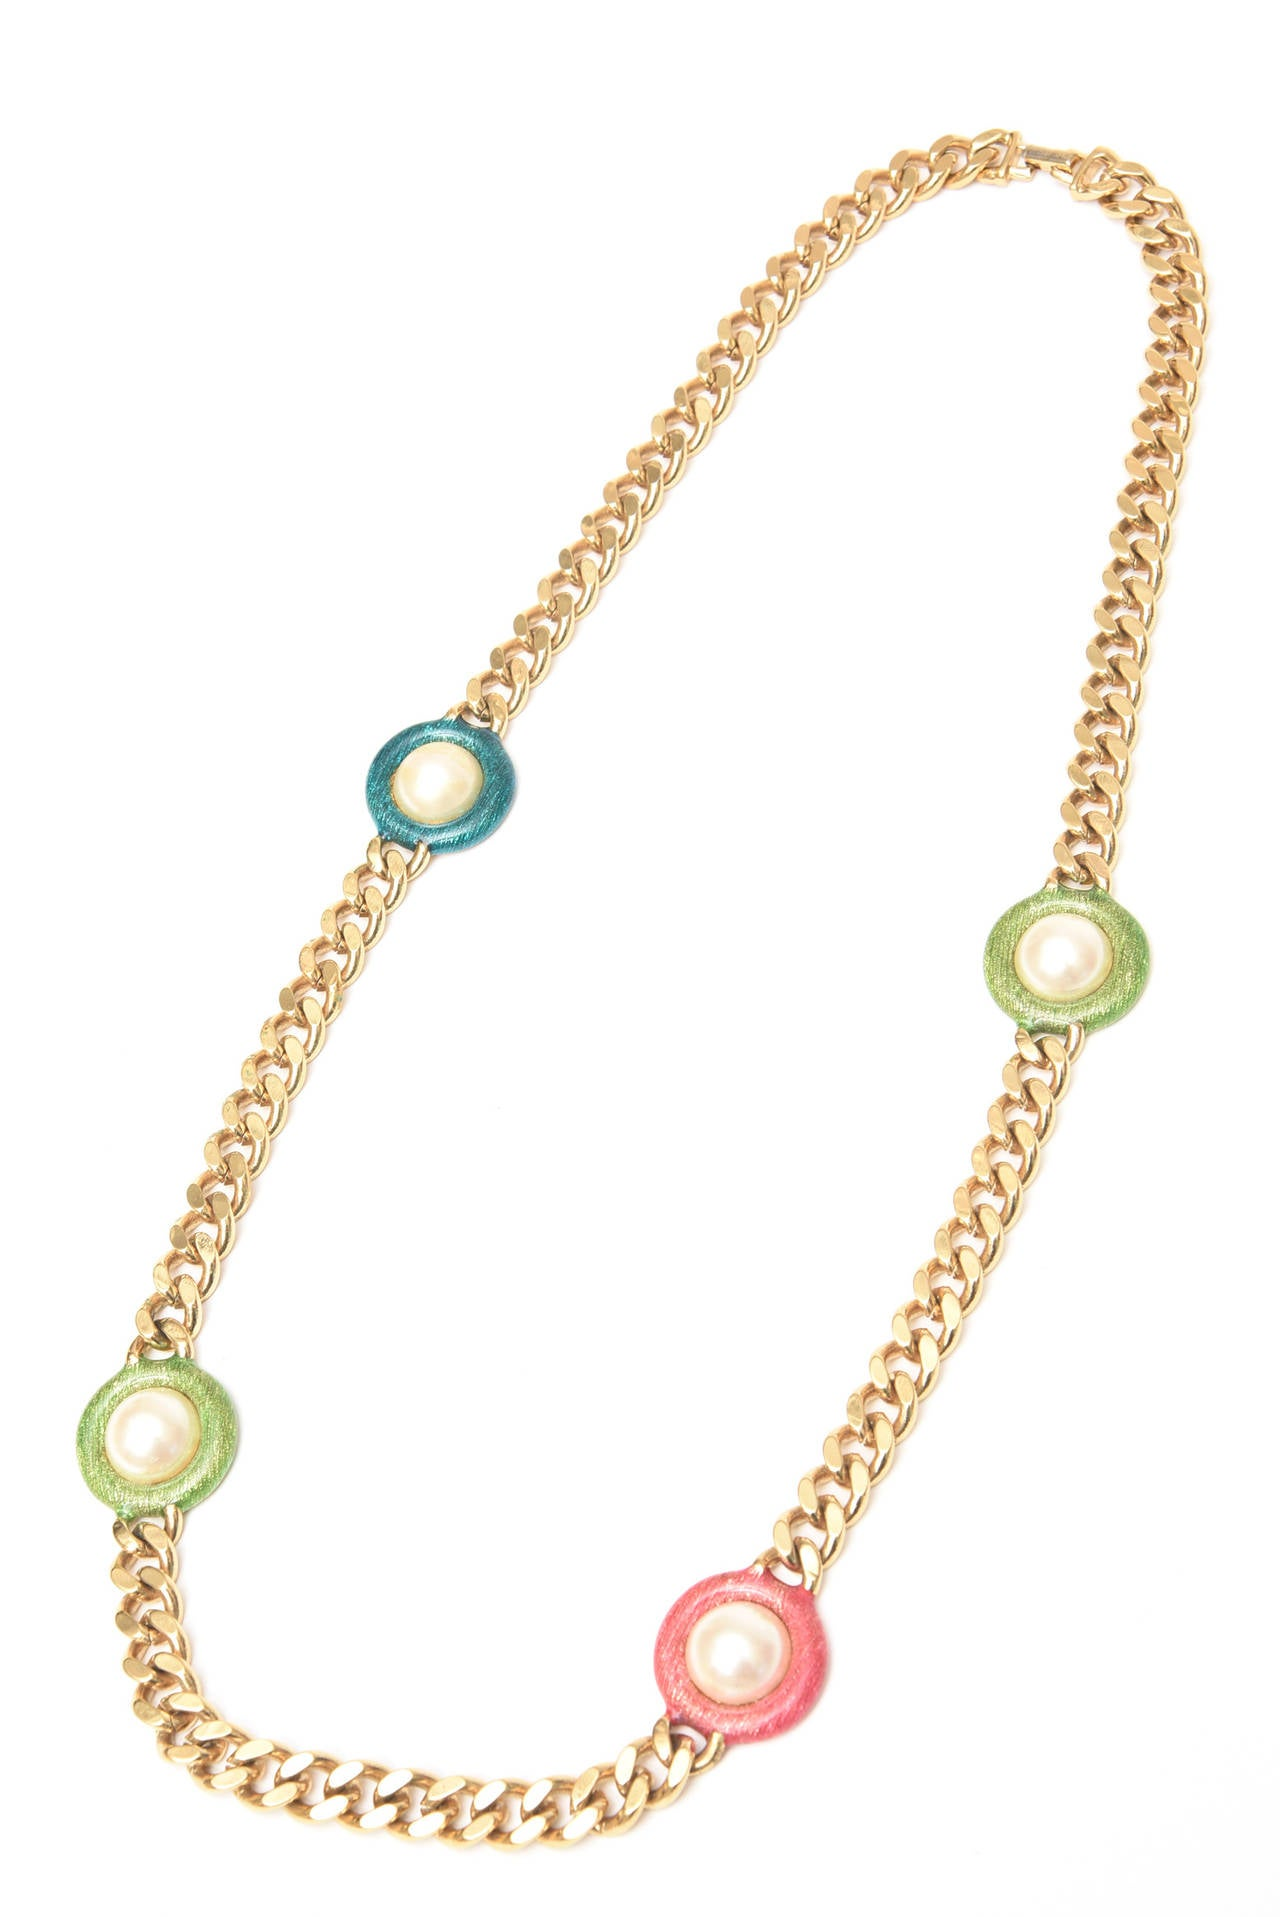 Guy Laroche Gold Tone Chain Link Strand Necklace with Enamel and Faux Pearl 3